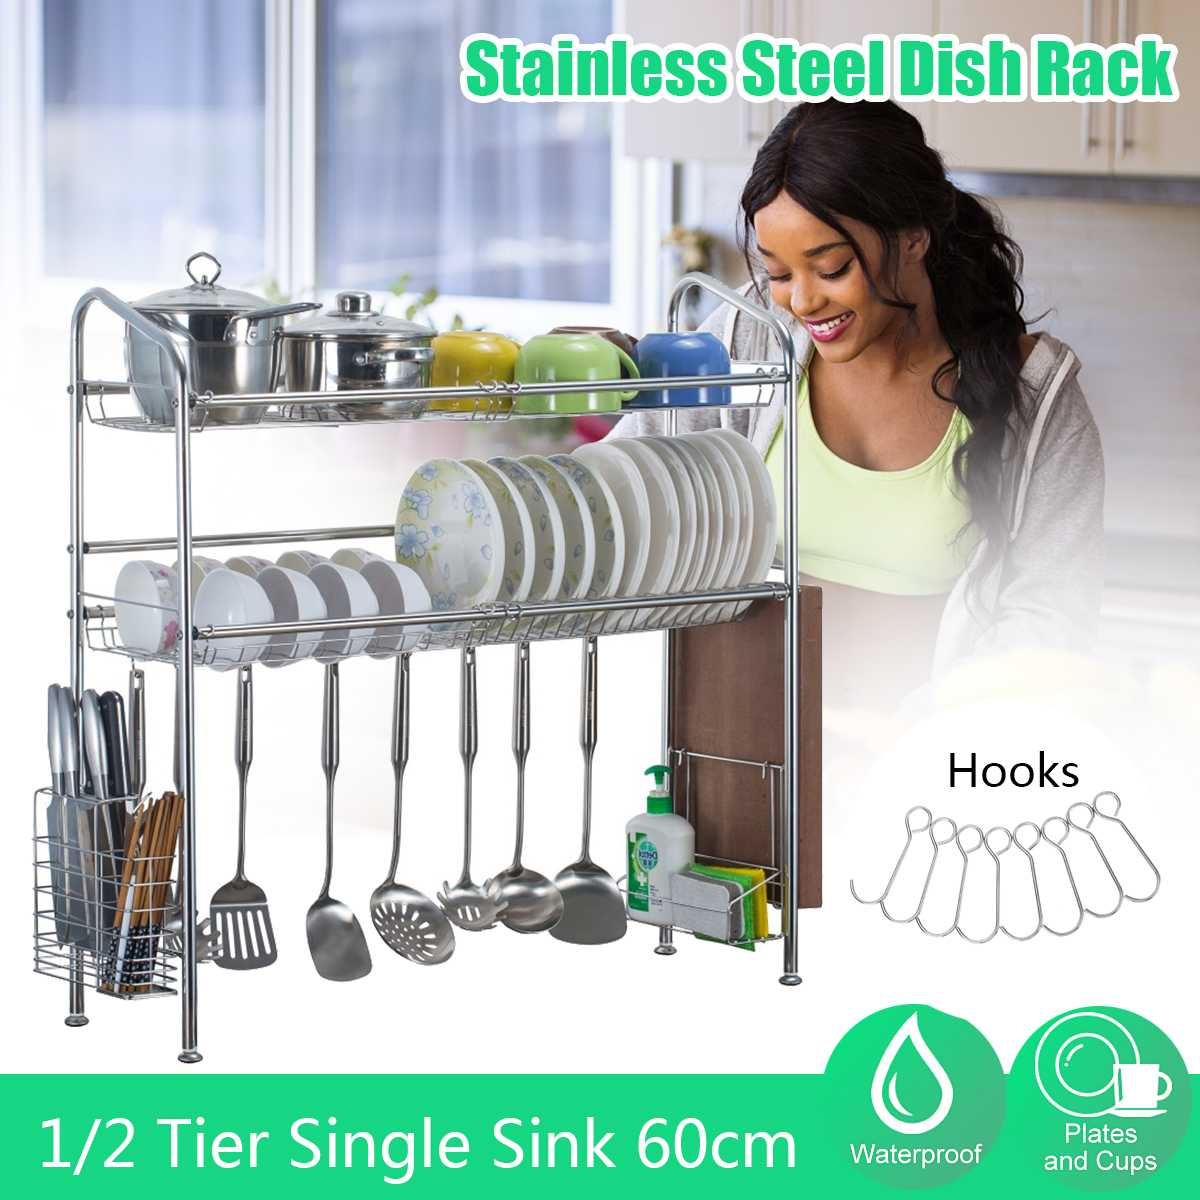 Layer Stainless Steel Kitchen Shelf Organizer Dishes Drying Rack Over Sink Drain Rack Kitchen Storage Countertop Utensils Holder